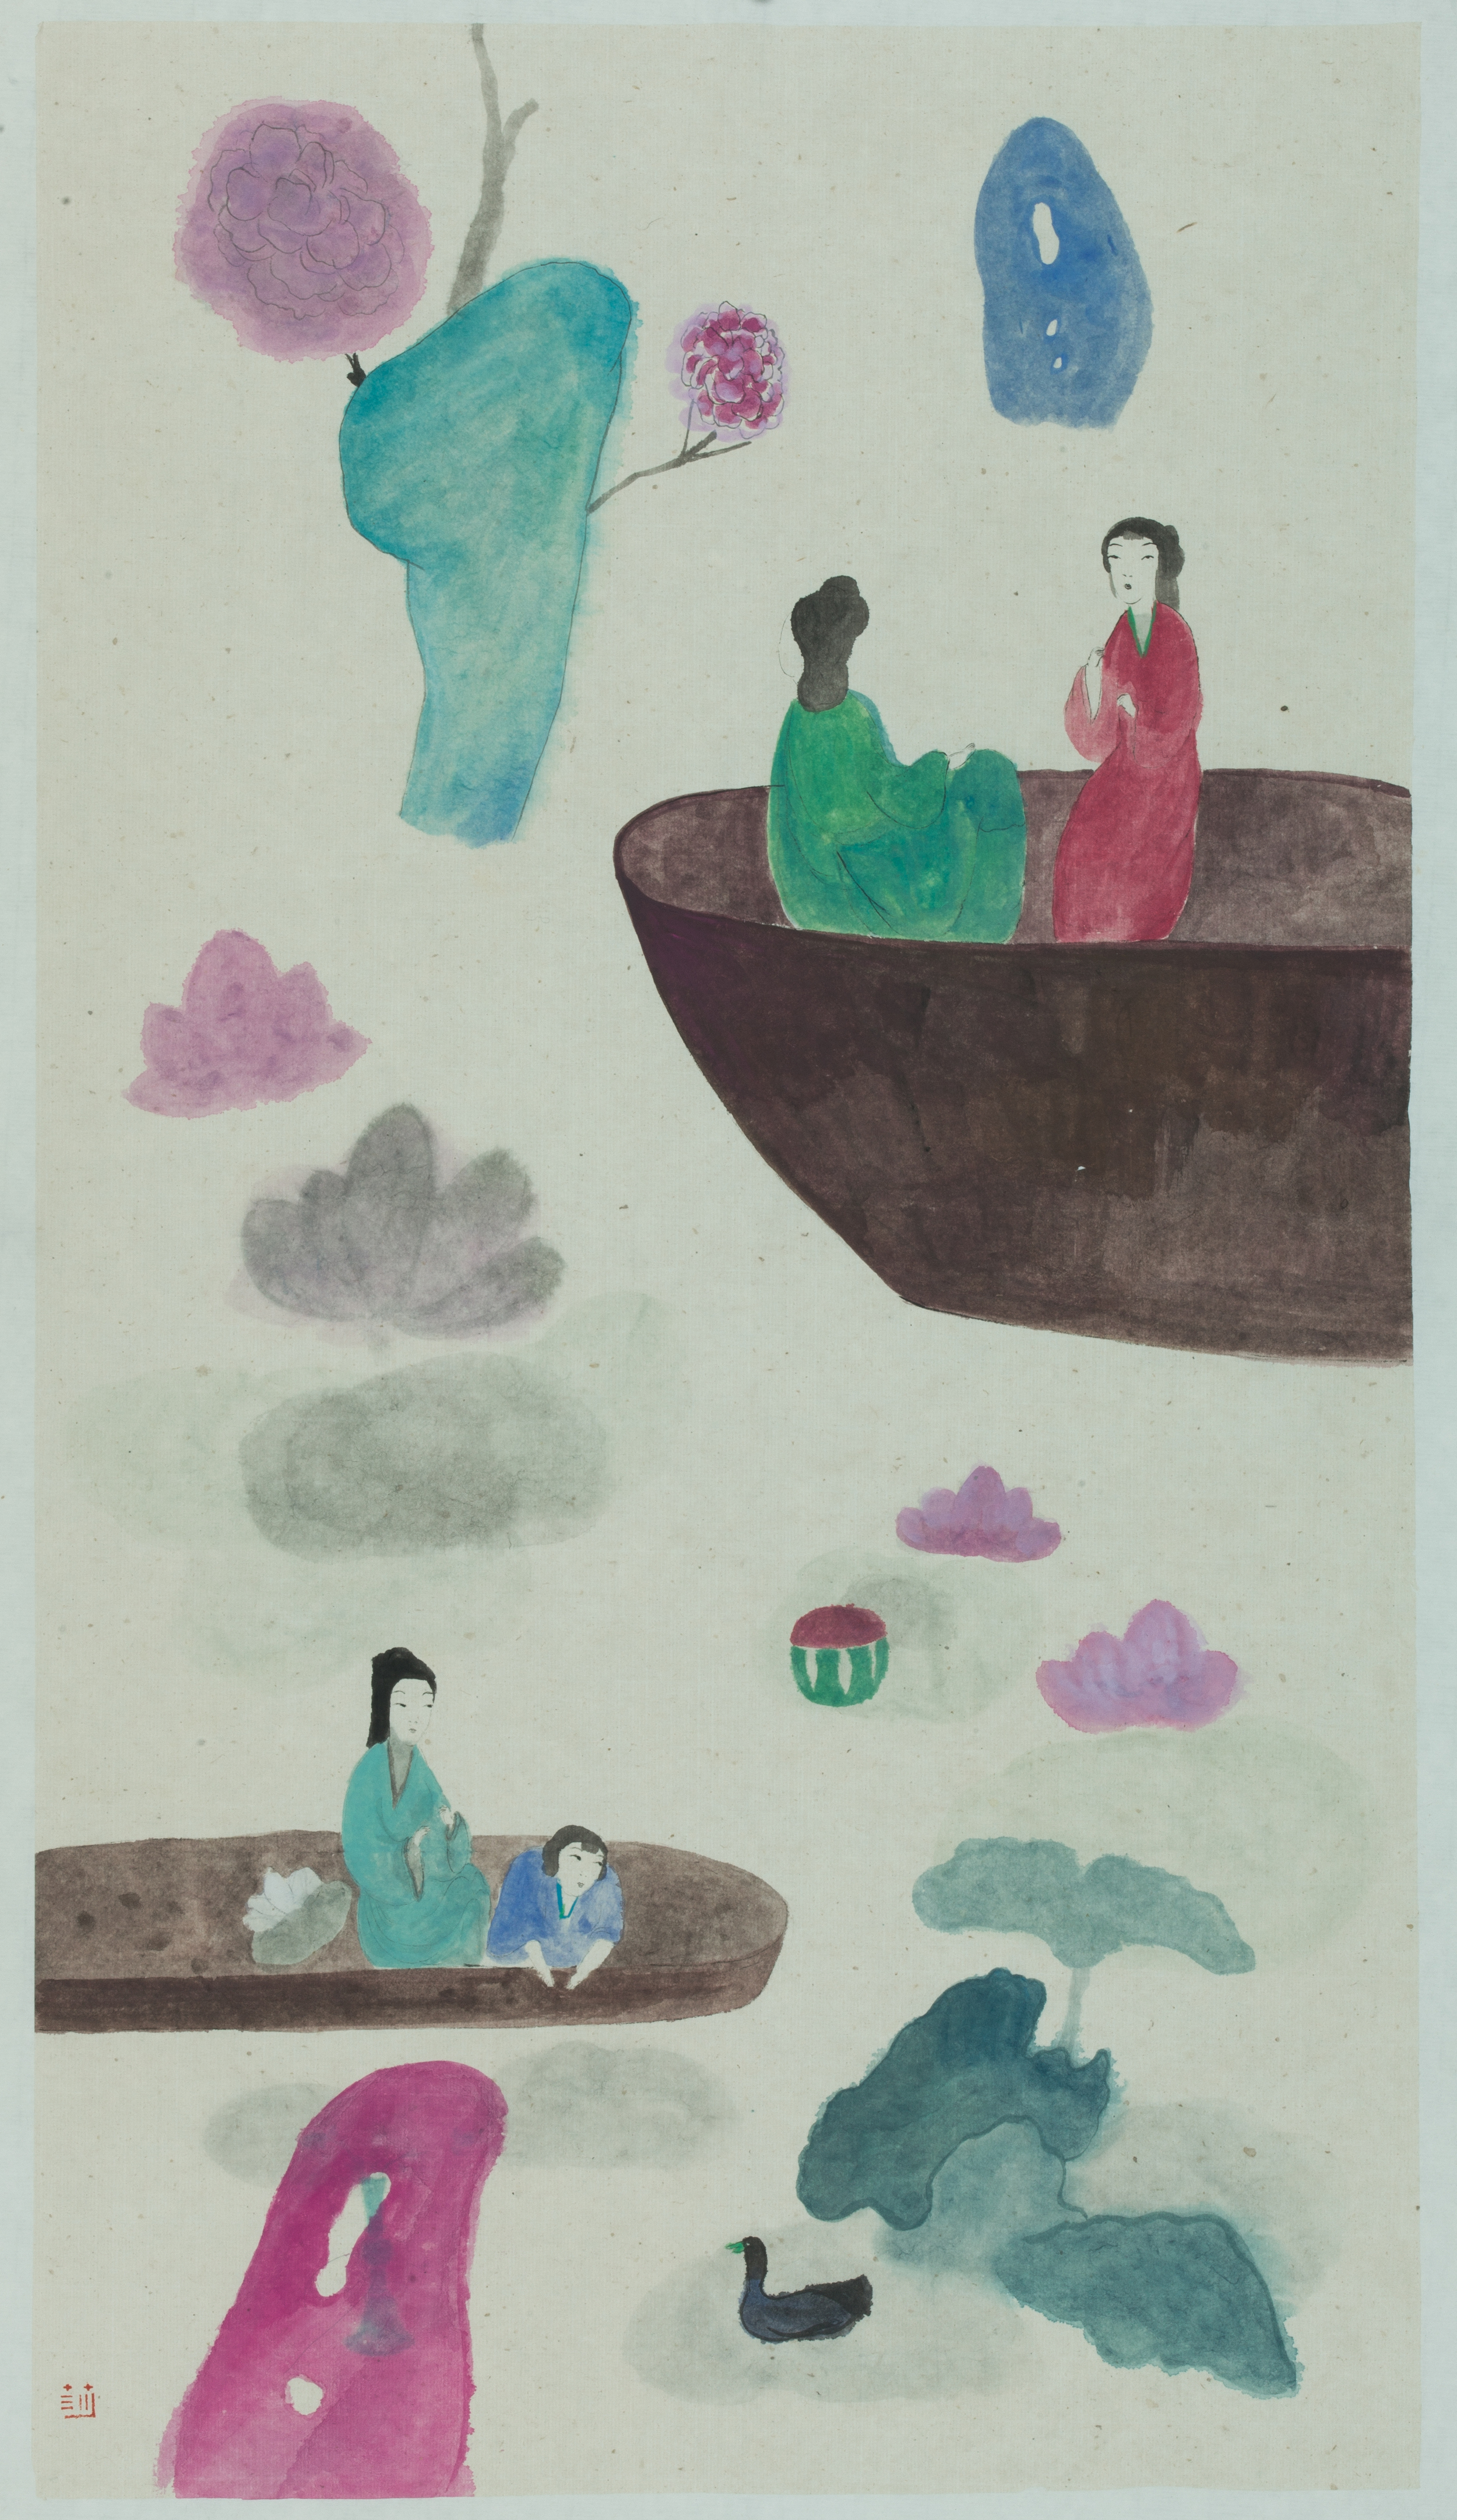 Wang Mengsha 王濛莎, Double Plum Blossoms 双梅景暗, 2013, Chinese ink and color on rice paper 纸本水墨设色, 69 x 38 cm